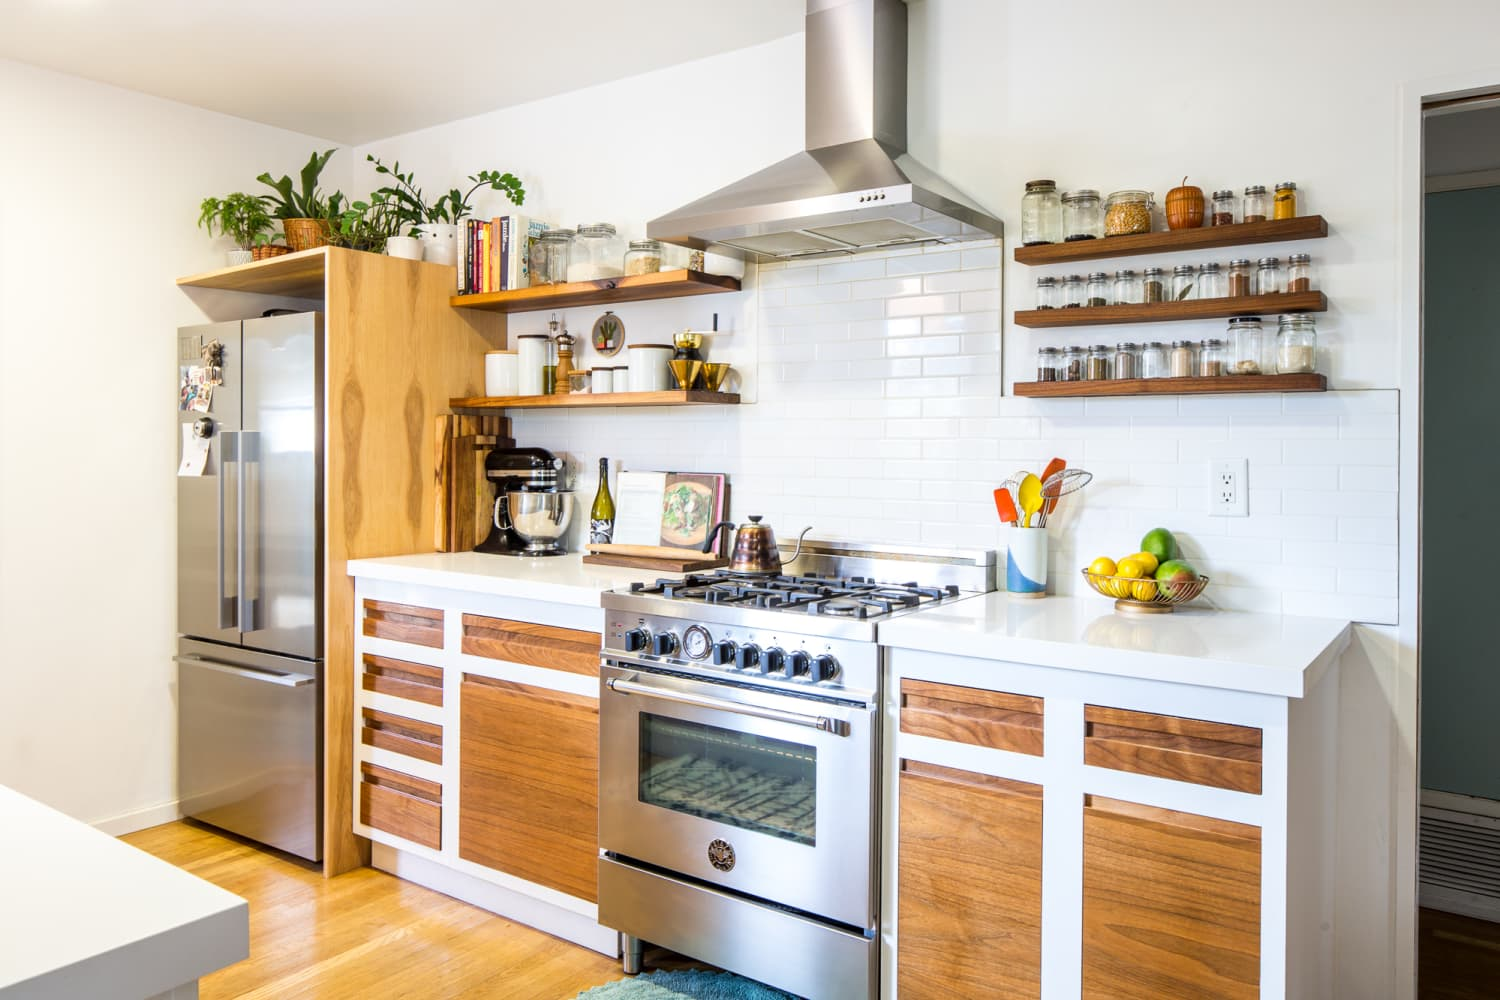 7 Timeless Kitchen Upgrades You Won't Regret in Five Years, According to Pros